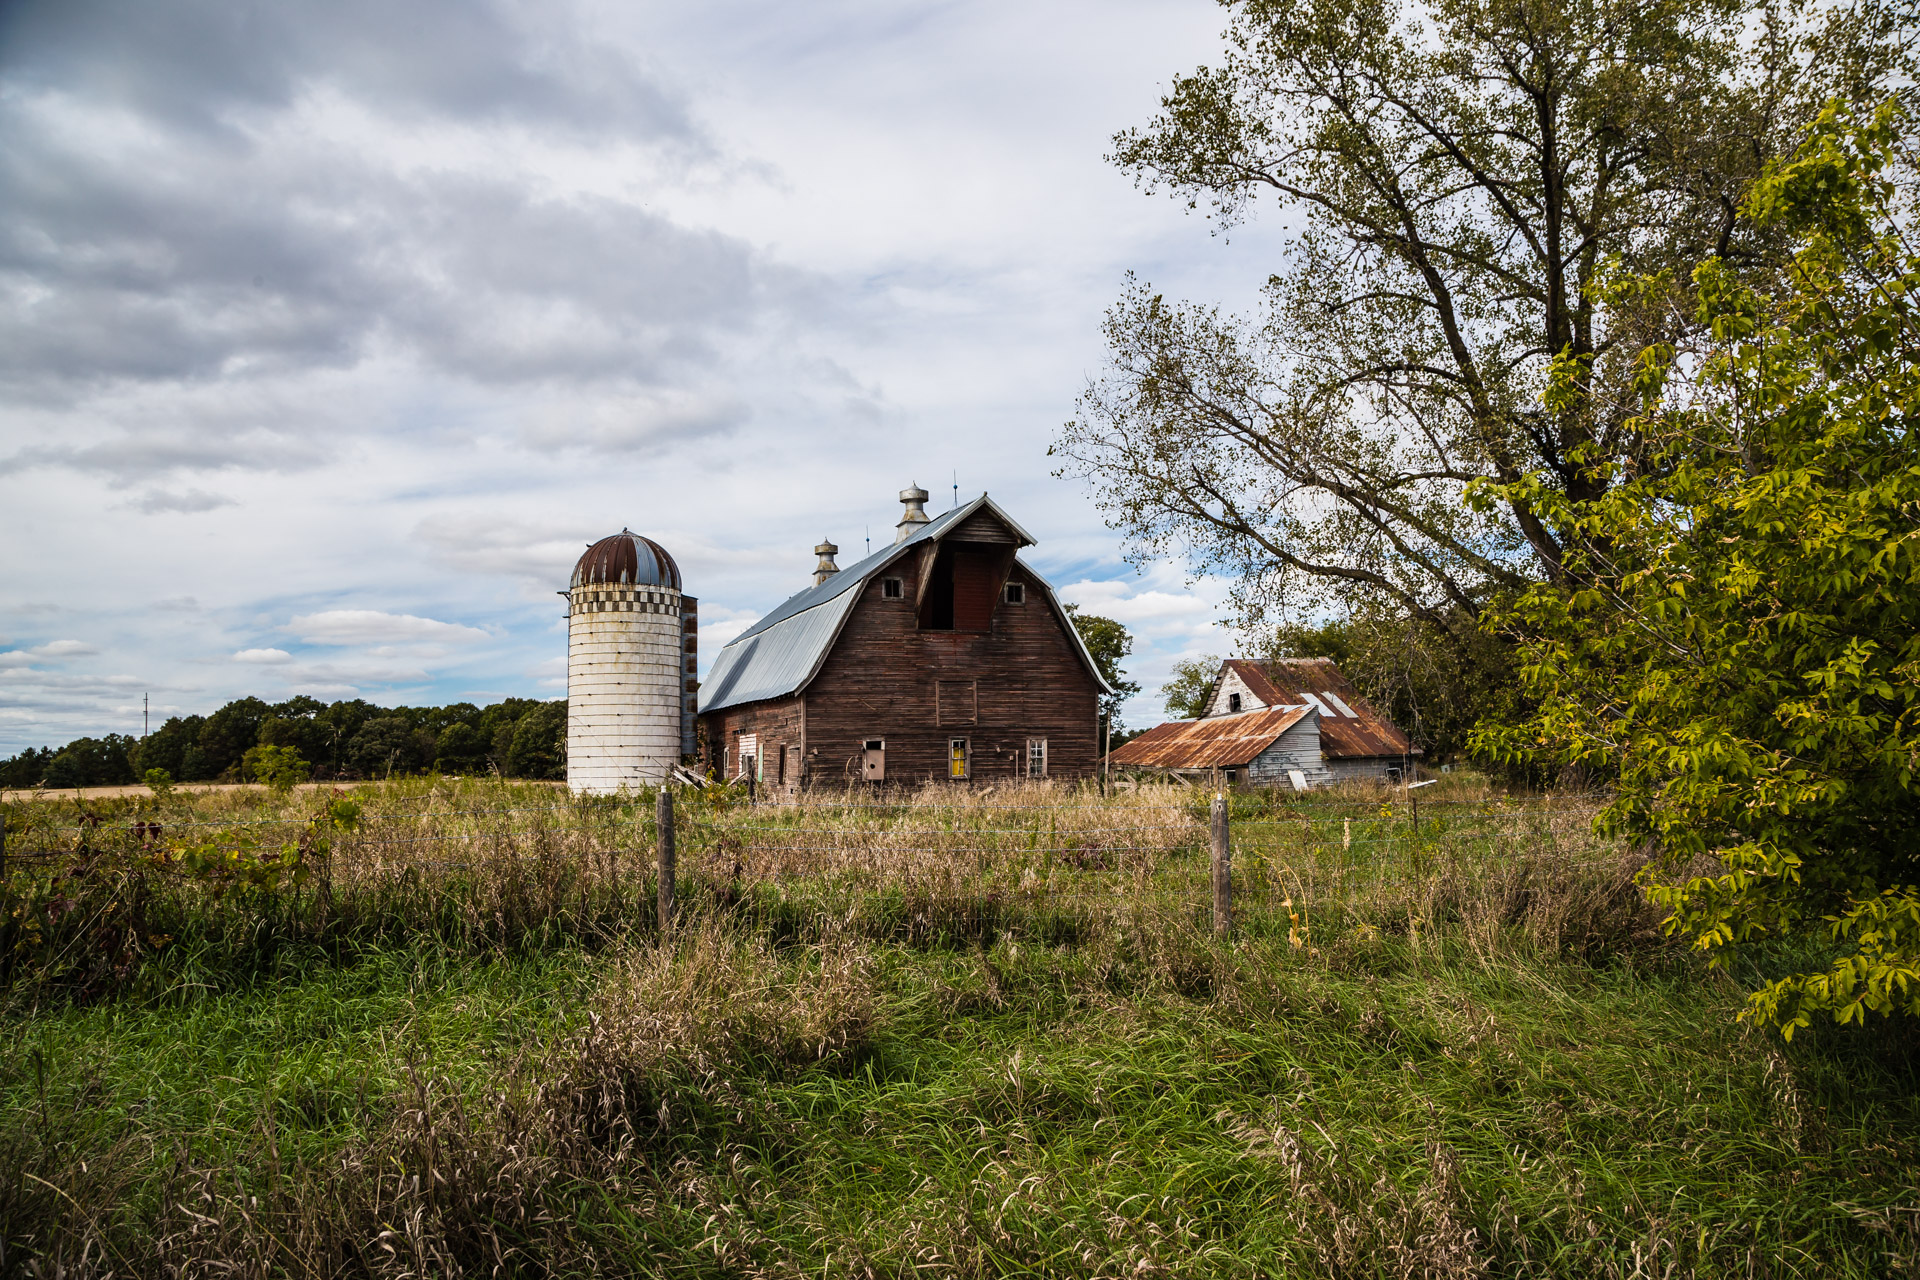 North Branch, Minnesota - A Charming Barn